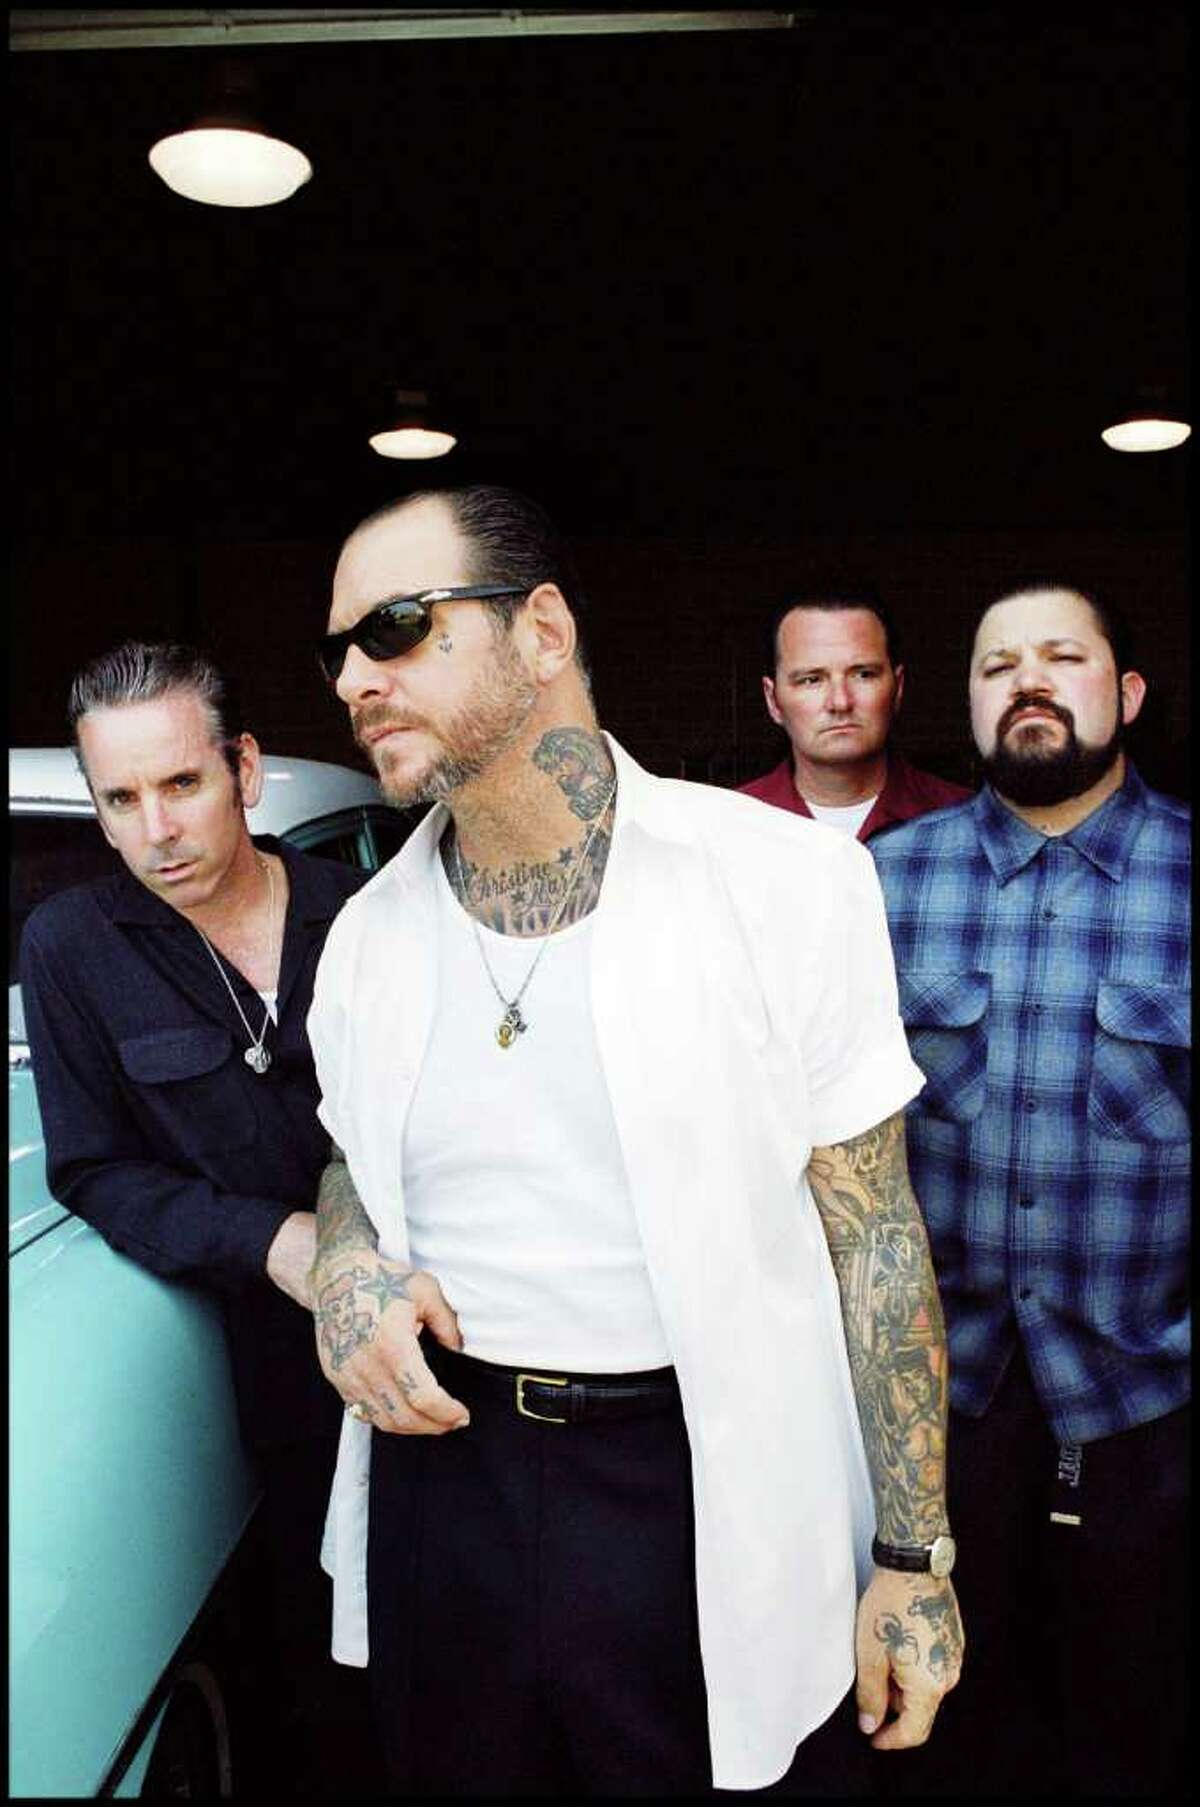 With original frontman Mike Ness on vocals and lead guitar and Los Lobos' David Hidalgo's son on drums, the pummeling godfathers of punk roar into town to draw on such albums as